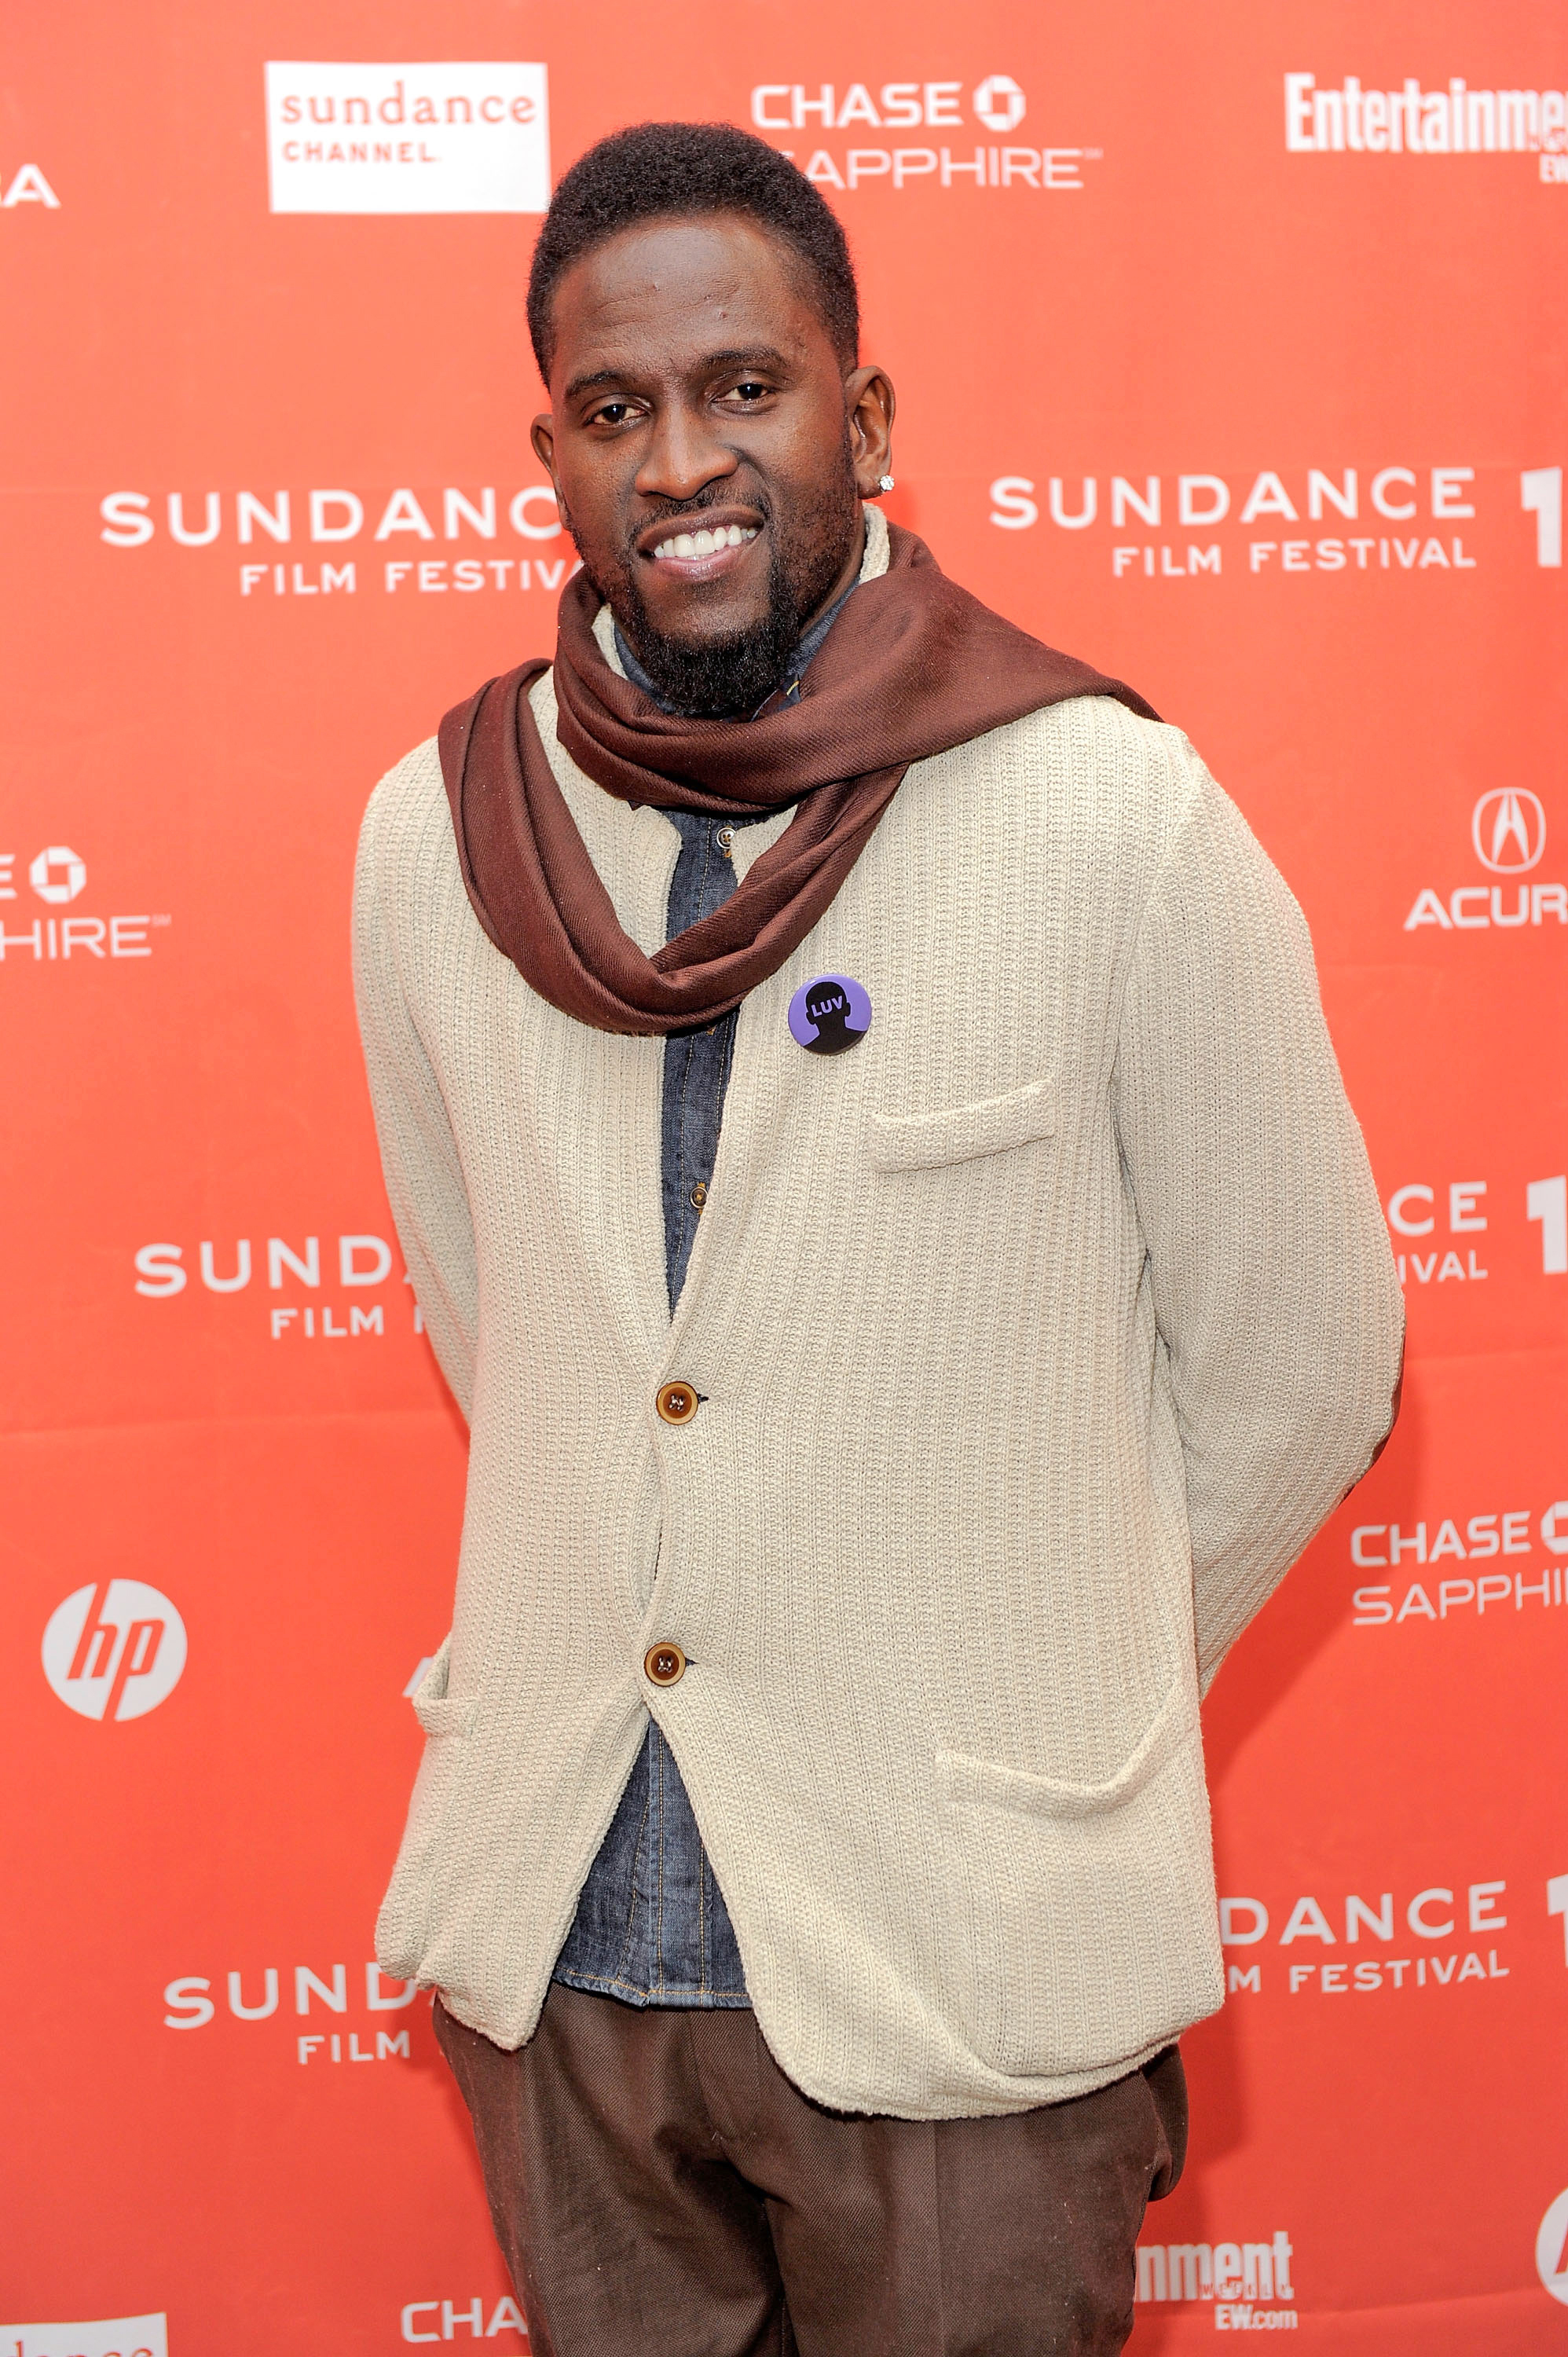 Anwan Glover attends the  LUV  premiere during the 2012 Sundance Film Festival held at Eccles Center Theatre on Jan. 23, 2012 in Park City, Utah.